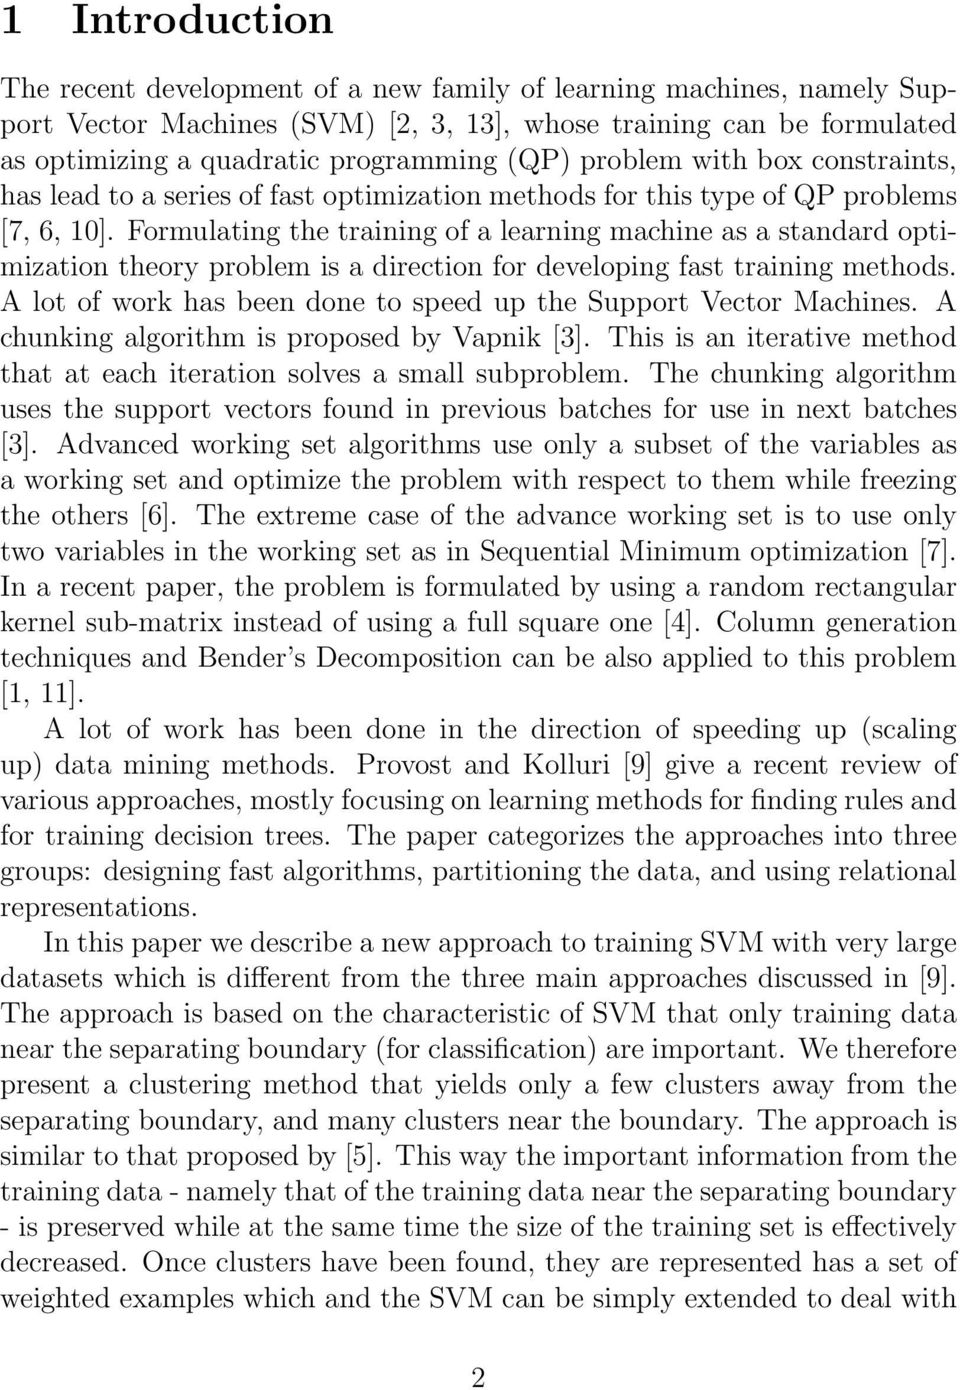 Formulating the training of a learning machine as a standard optimization theory problem is a direction for developing fast training methods.